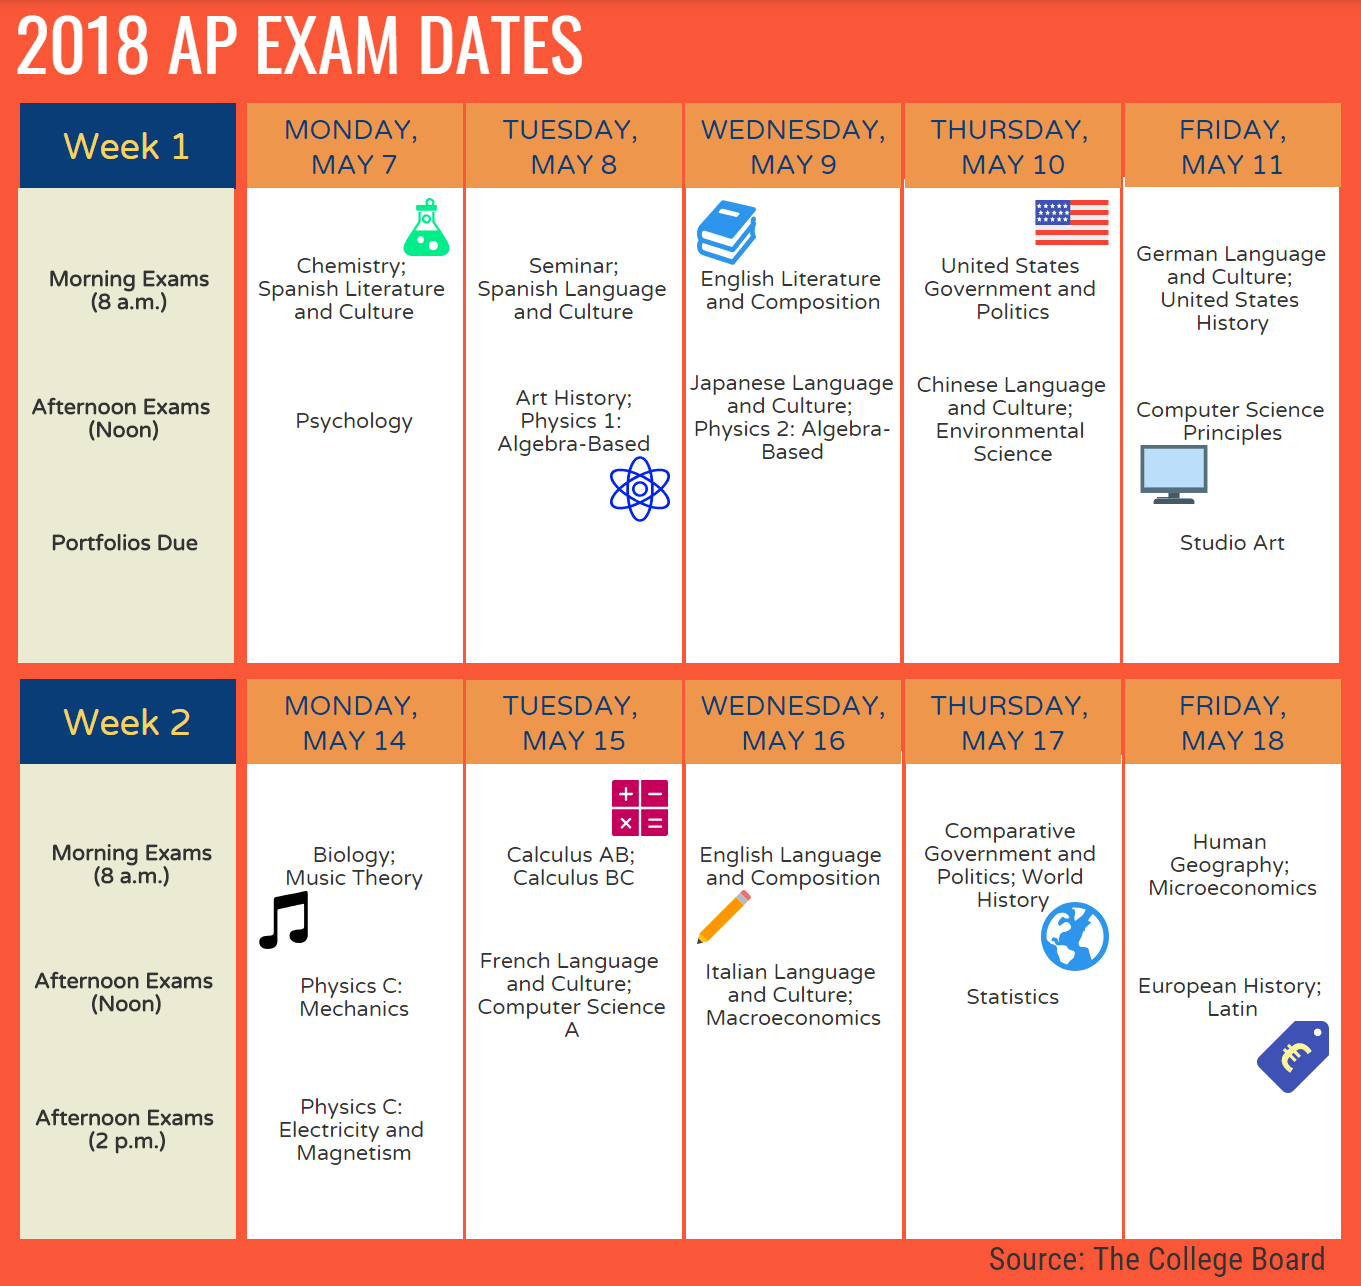 Teachers of AP classes must plan to have all the required material complete by the date scheduled in May for their subject's AP exam.